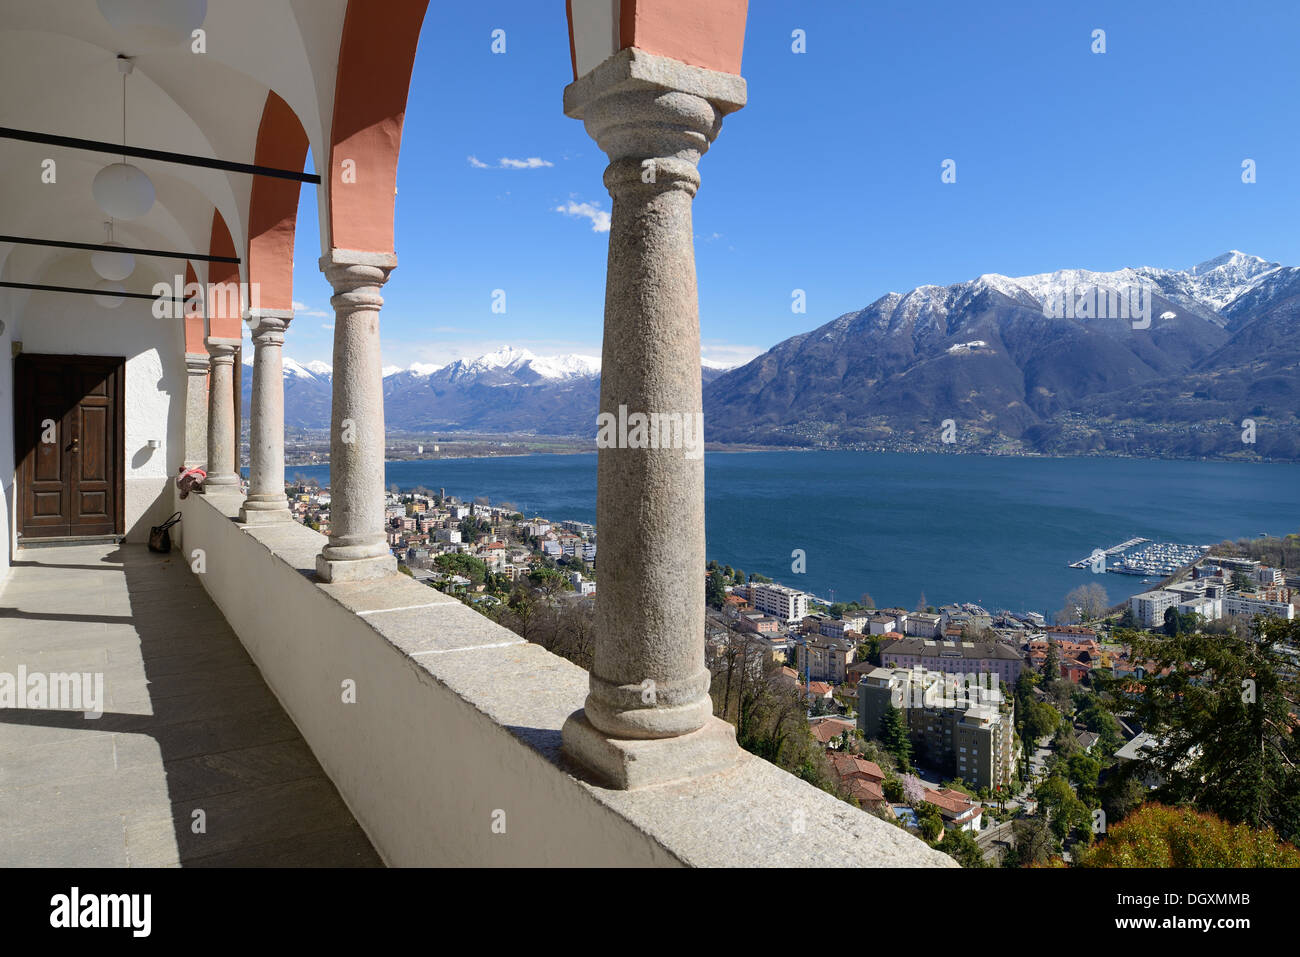 View from the terrace of the Sanctuary of the Madonna del Sasso or Our Lady of the Rock over Locarno and Lake Maggiore, Orselina - Stock Image